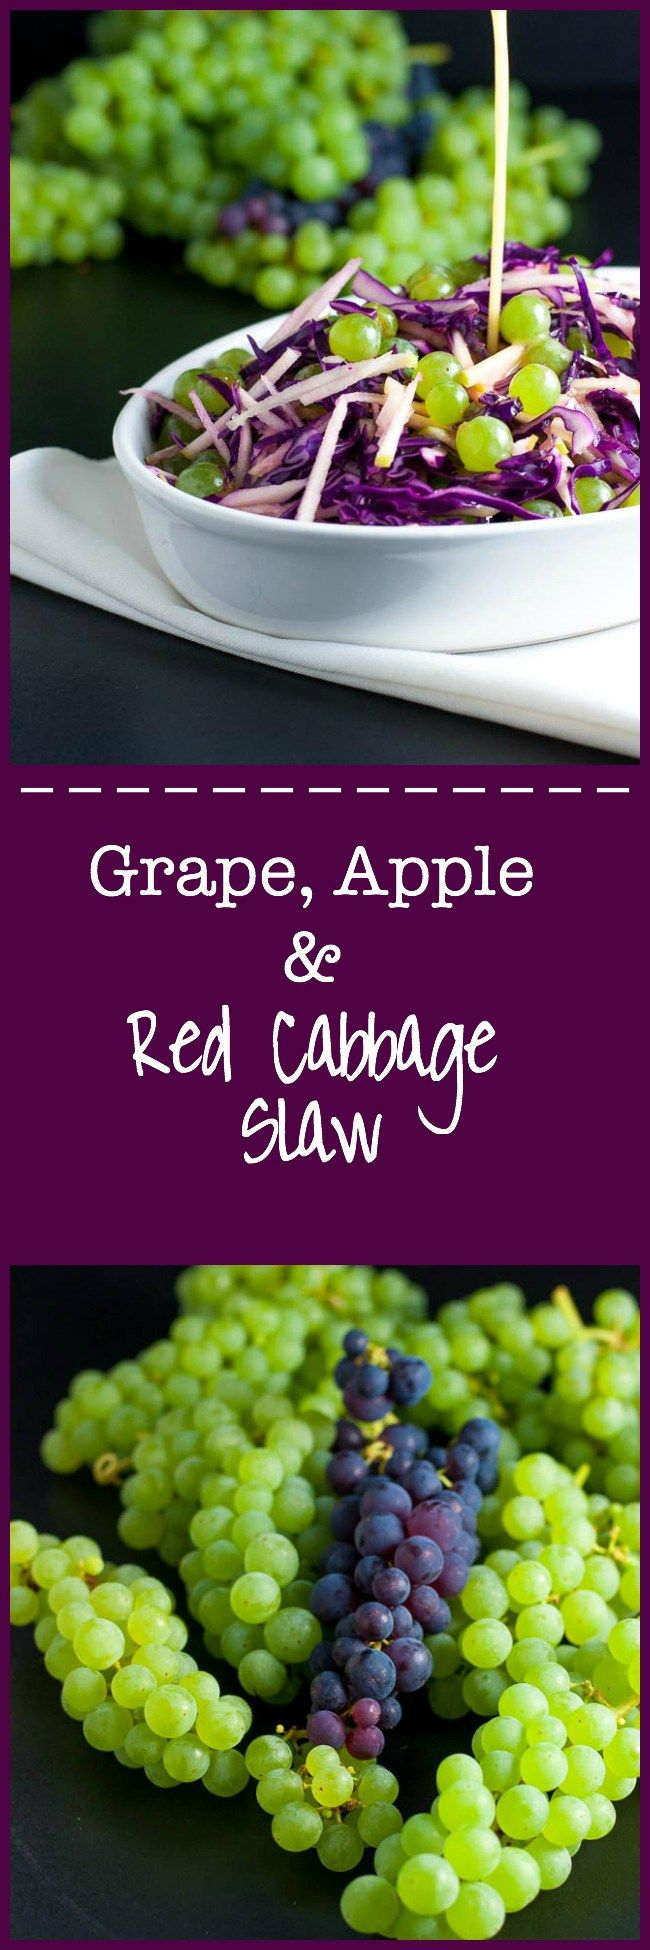 Grape, Apple and Red Cabbage Slaw. A paleo side dish, full of Vitamin C! It's crunchy, tart and sweet, all at the same time and it's dressed with a light apple cider and honey vinaigrette that adds just the touch of sweetness needed to perfectly balance the flavours. |www.flavourandsavour.com